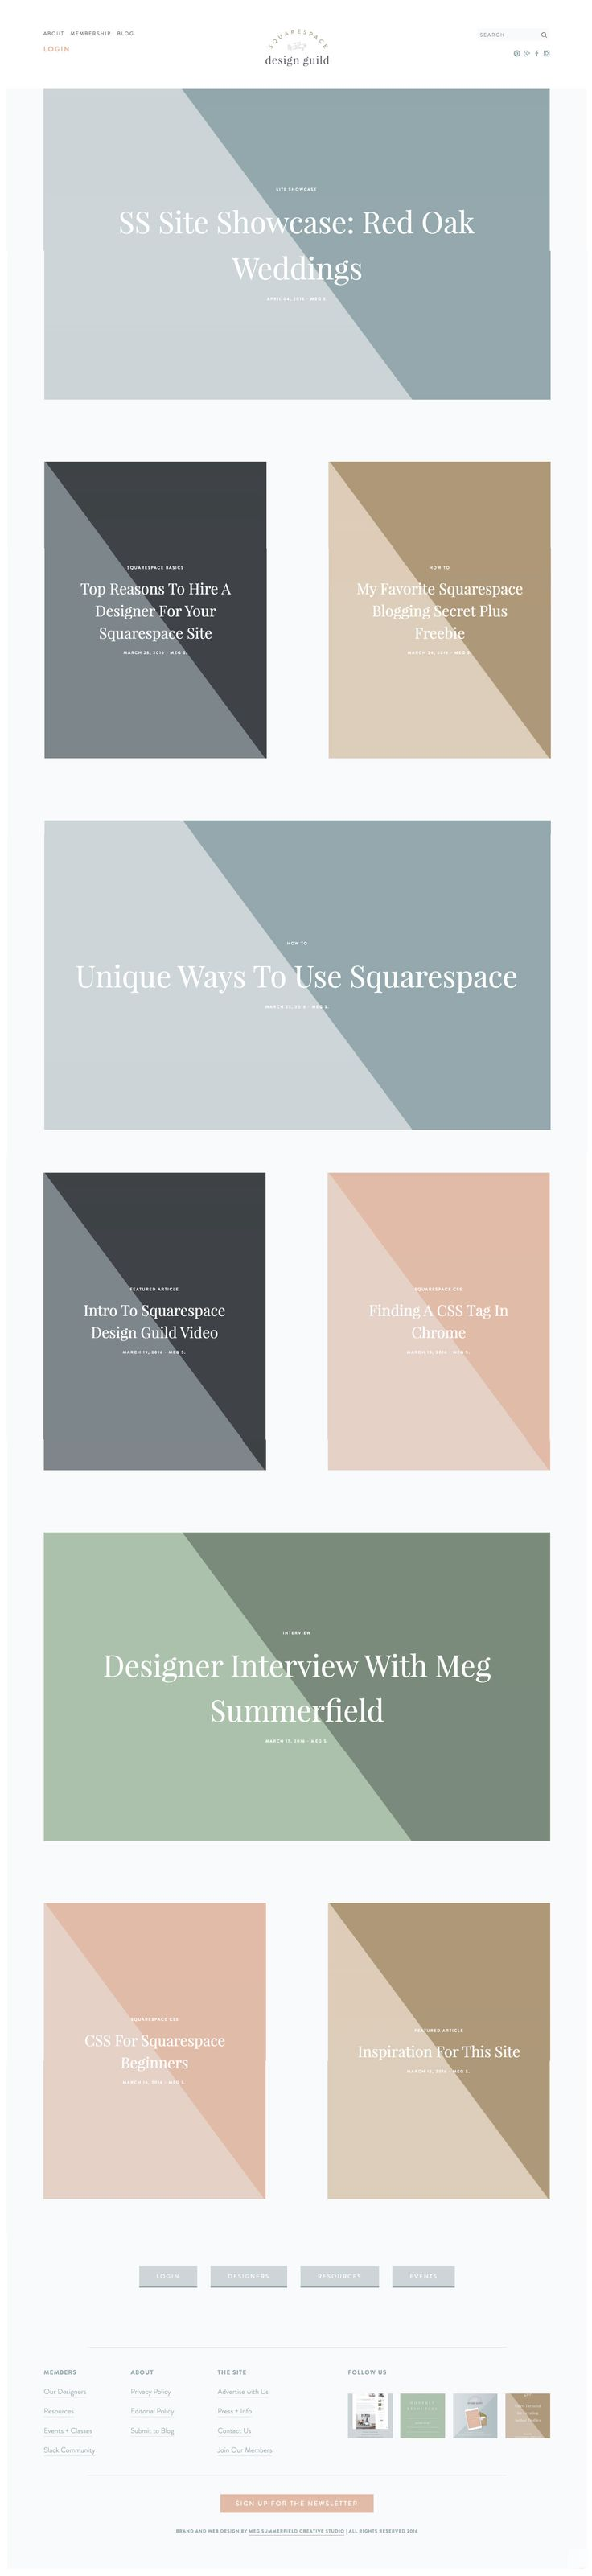 squarespace design guild, a resource for designers working in squarespace for client's websites